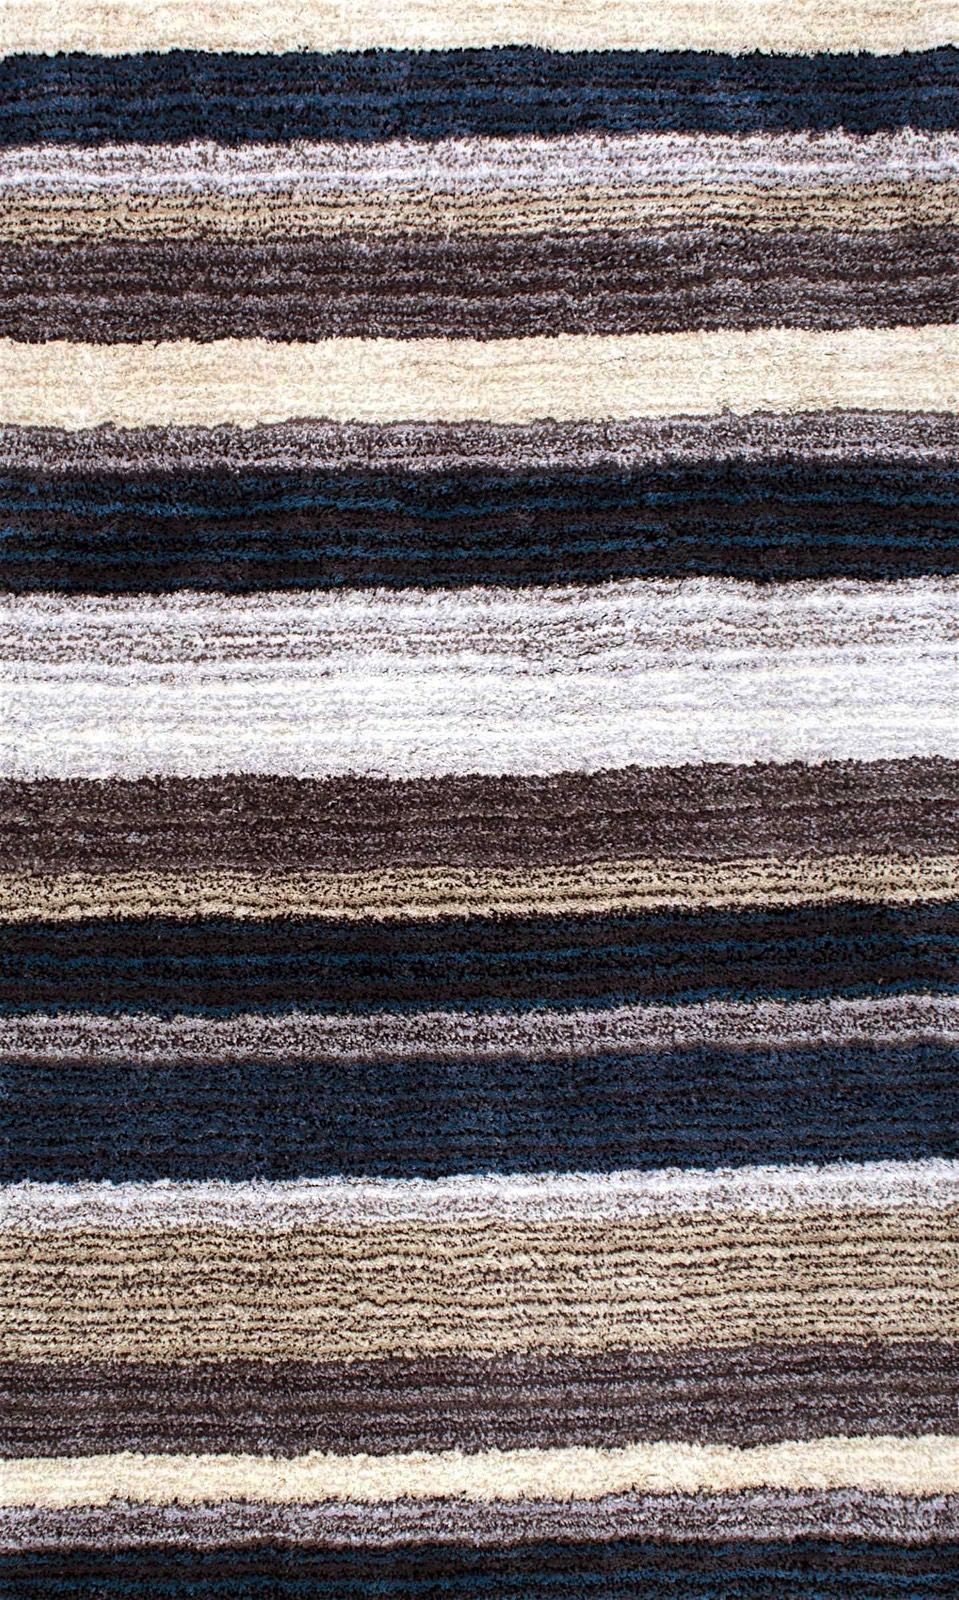 nuloom classie shag area rug collection